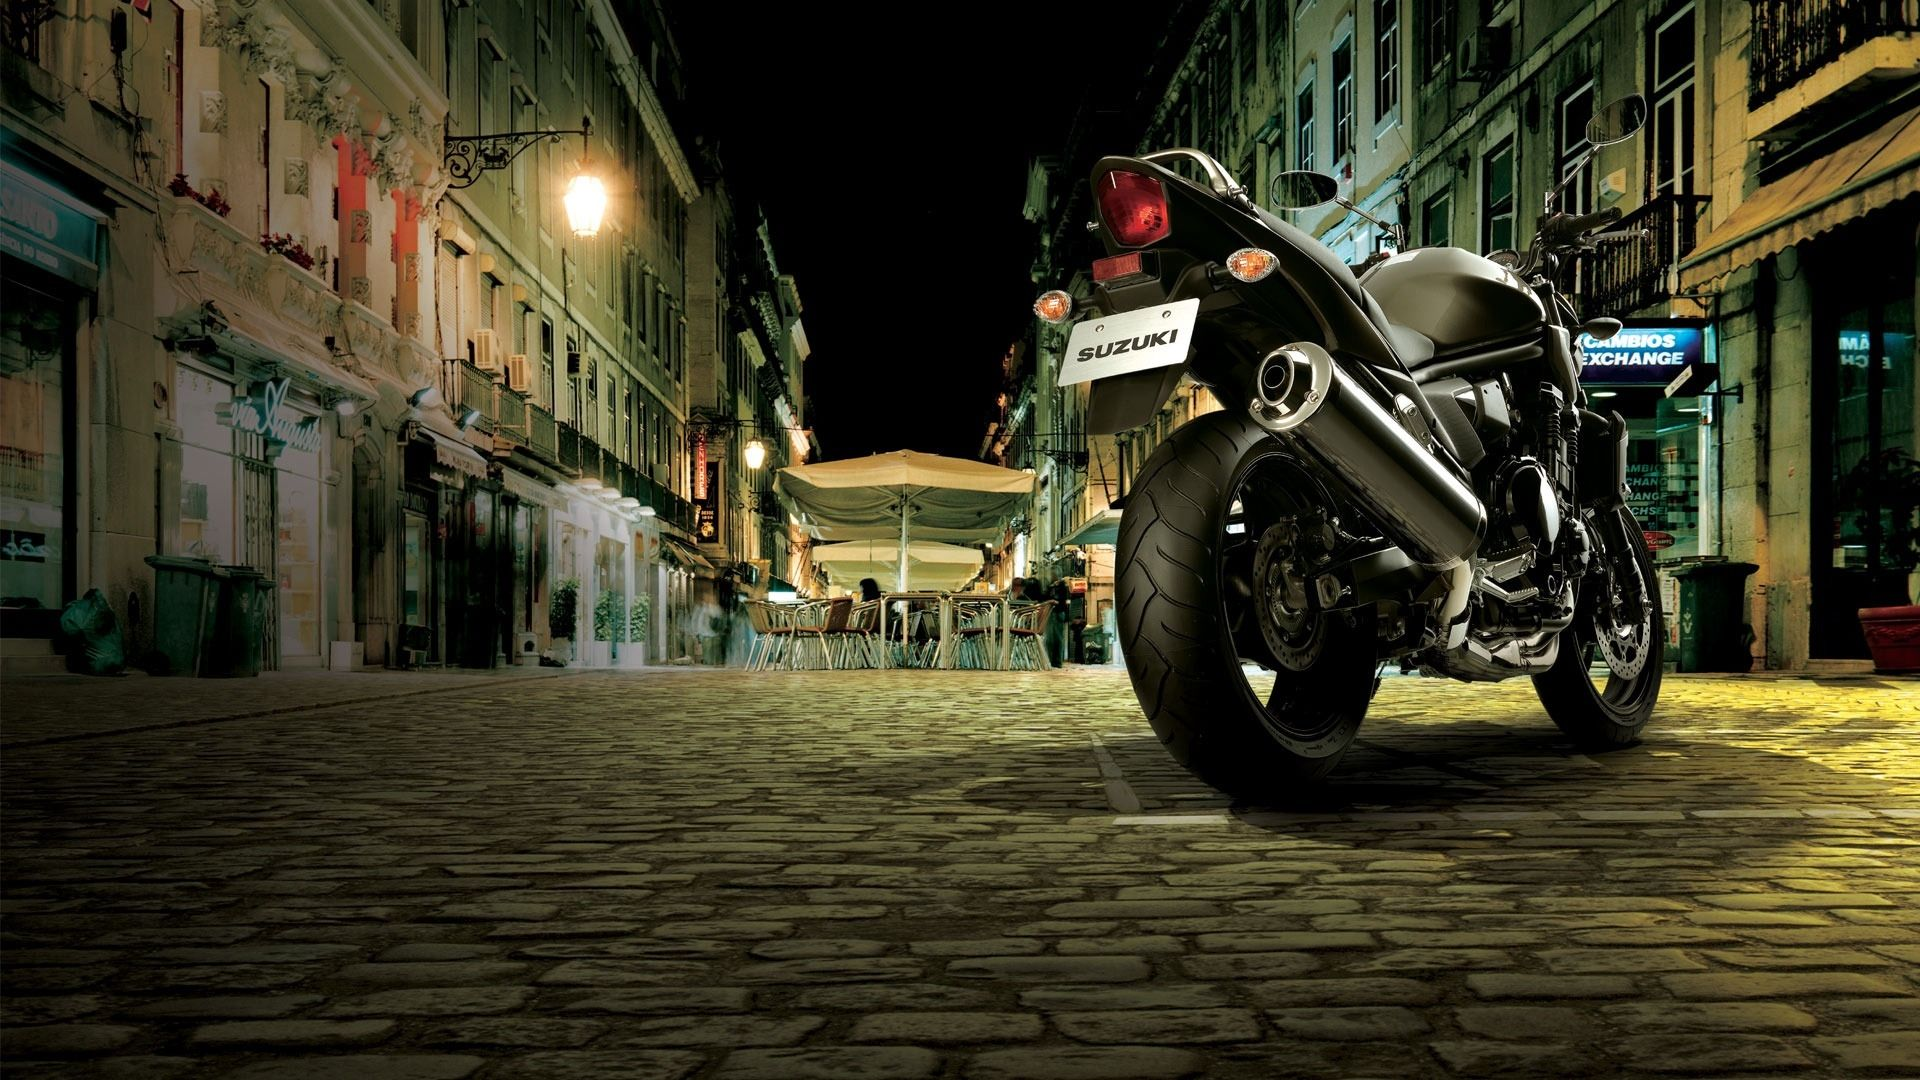 Motorcycle Backgrounds Hd Wallpapers Free Download Motorcycle Wallpaper Suzuki Bandit Motorcycle